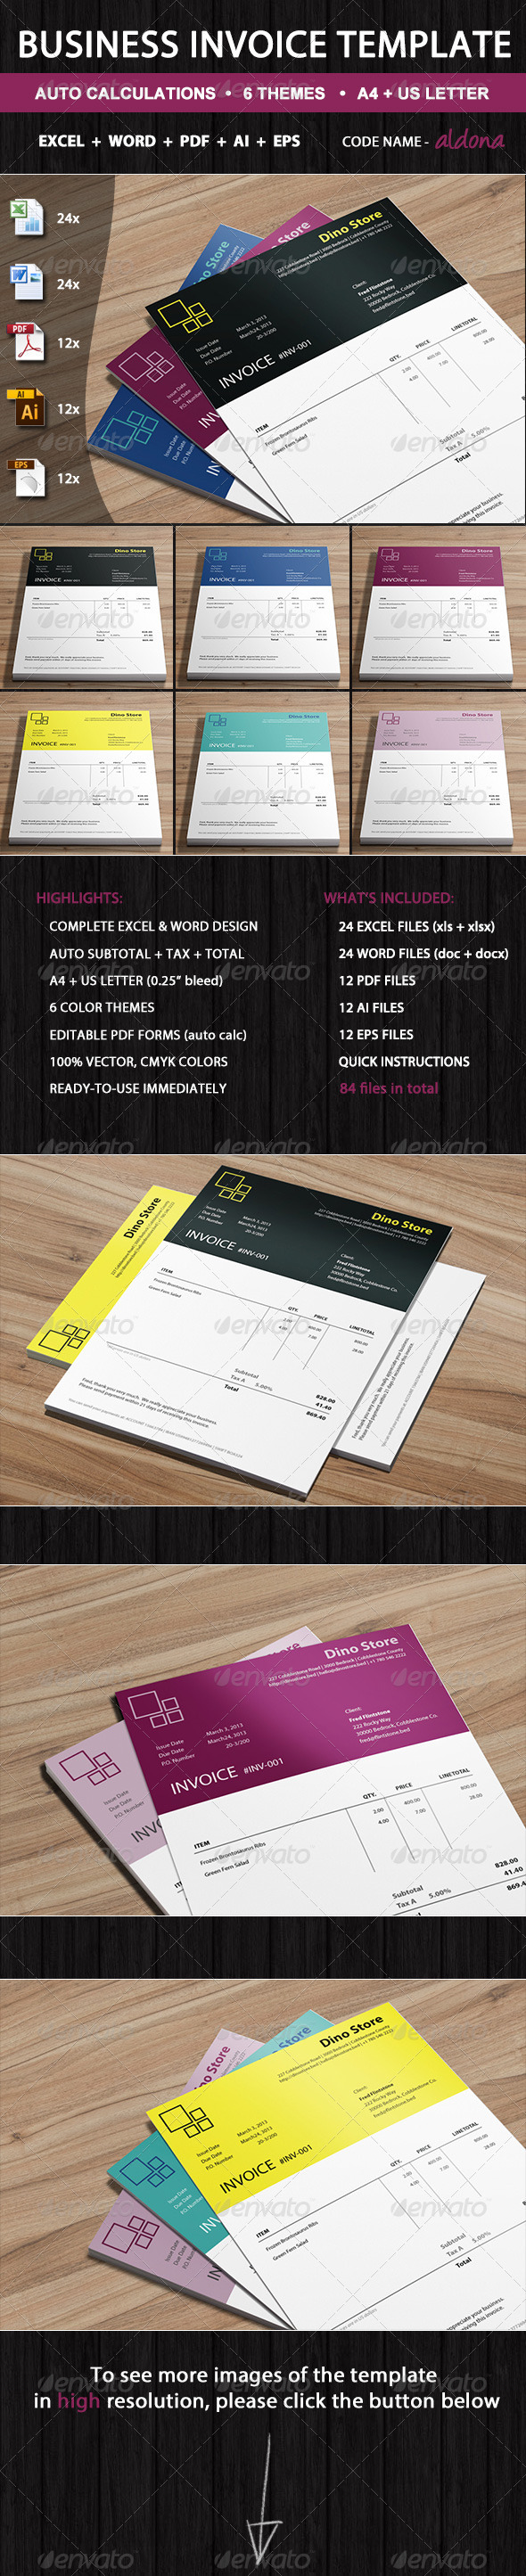 Commercial Proforma Invoice Pdf Ms Word Invoice Graphics Designs  Templates From Graphicriver Printable Invoice Pdf Excel with Invoice Reciept Pdf  Office Receipt Template Excel